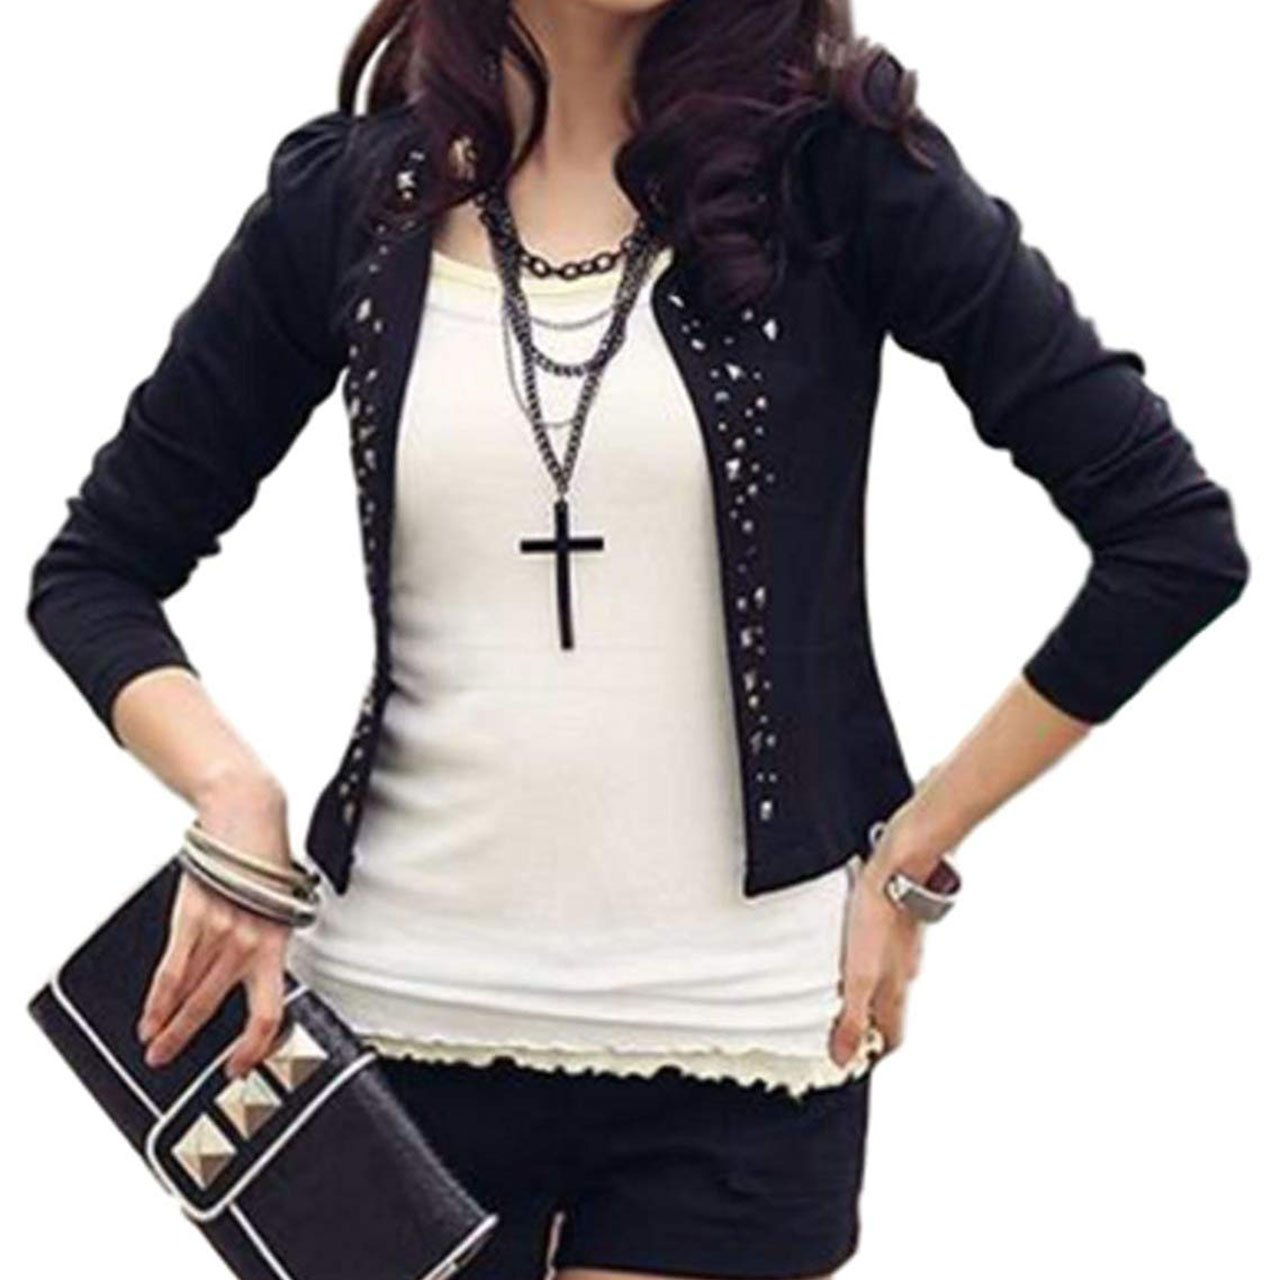 PT&Key Women's Cardigans Casual Outer Studs Deco Slim Fitted Office Casual (US10(tag XXL), Black)